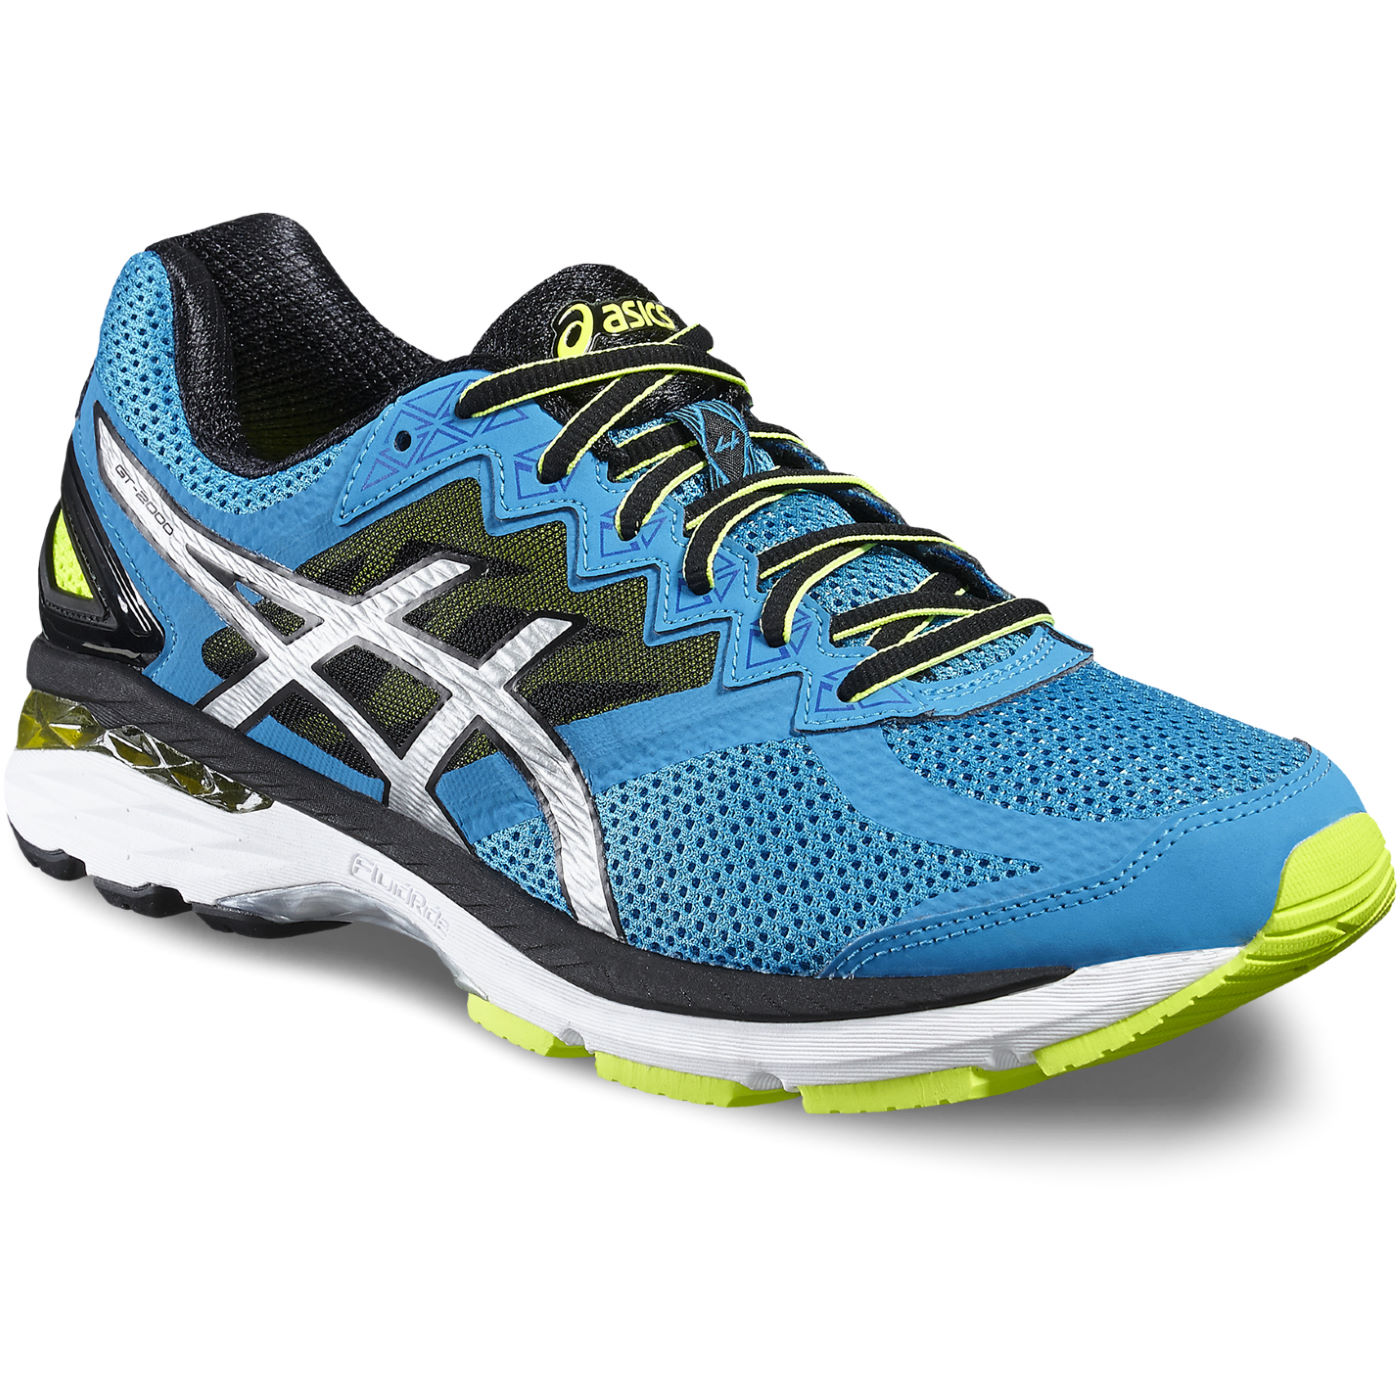 Blue And Yello Asics Shoes